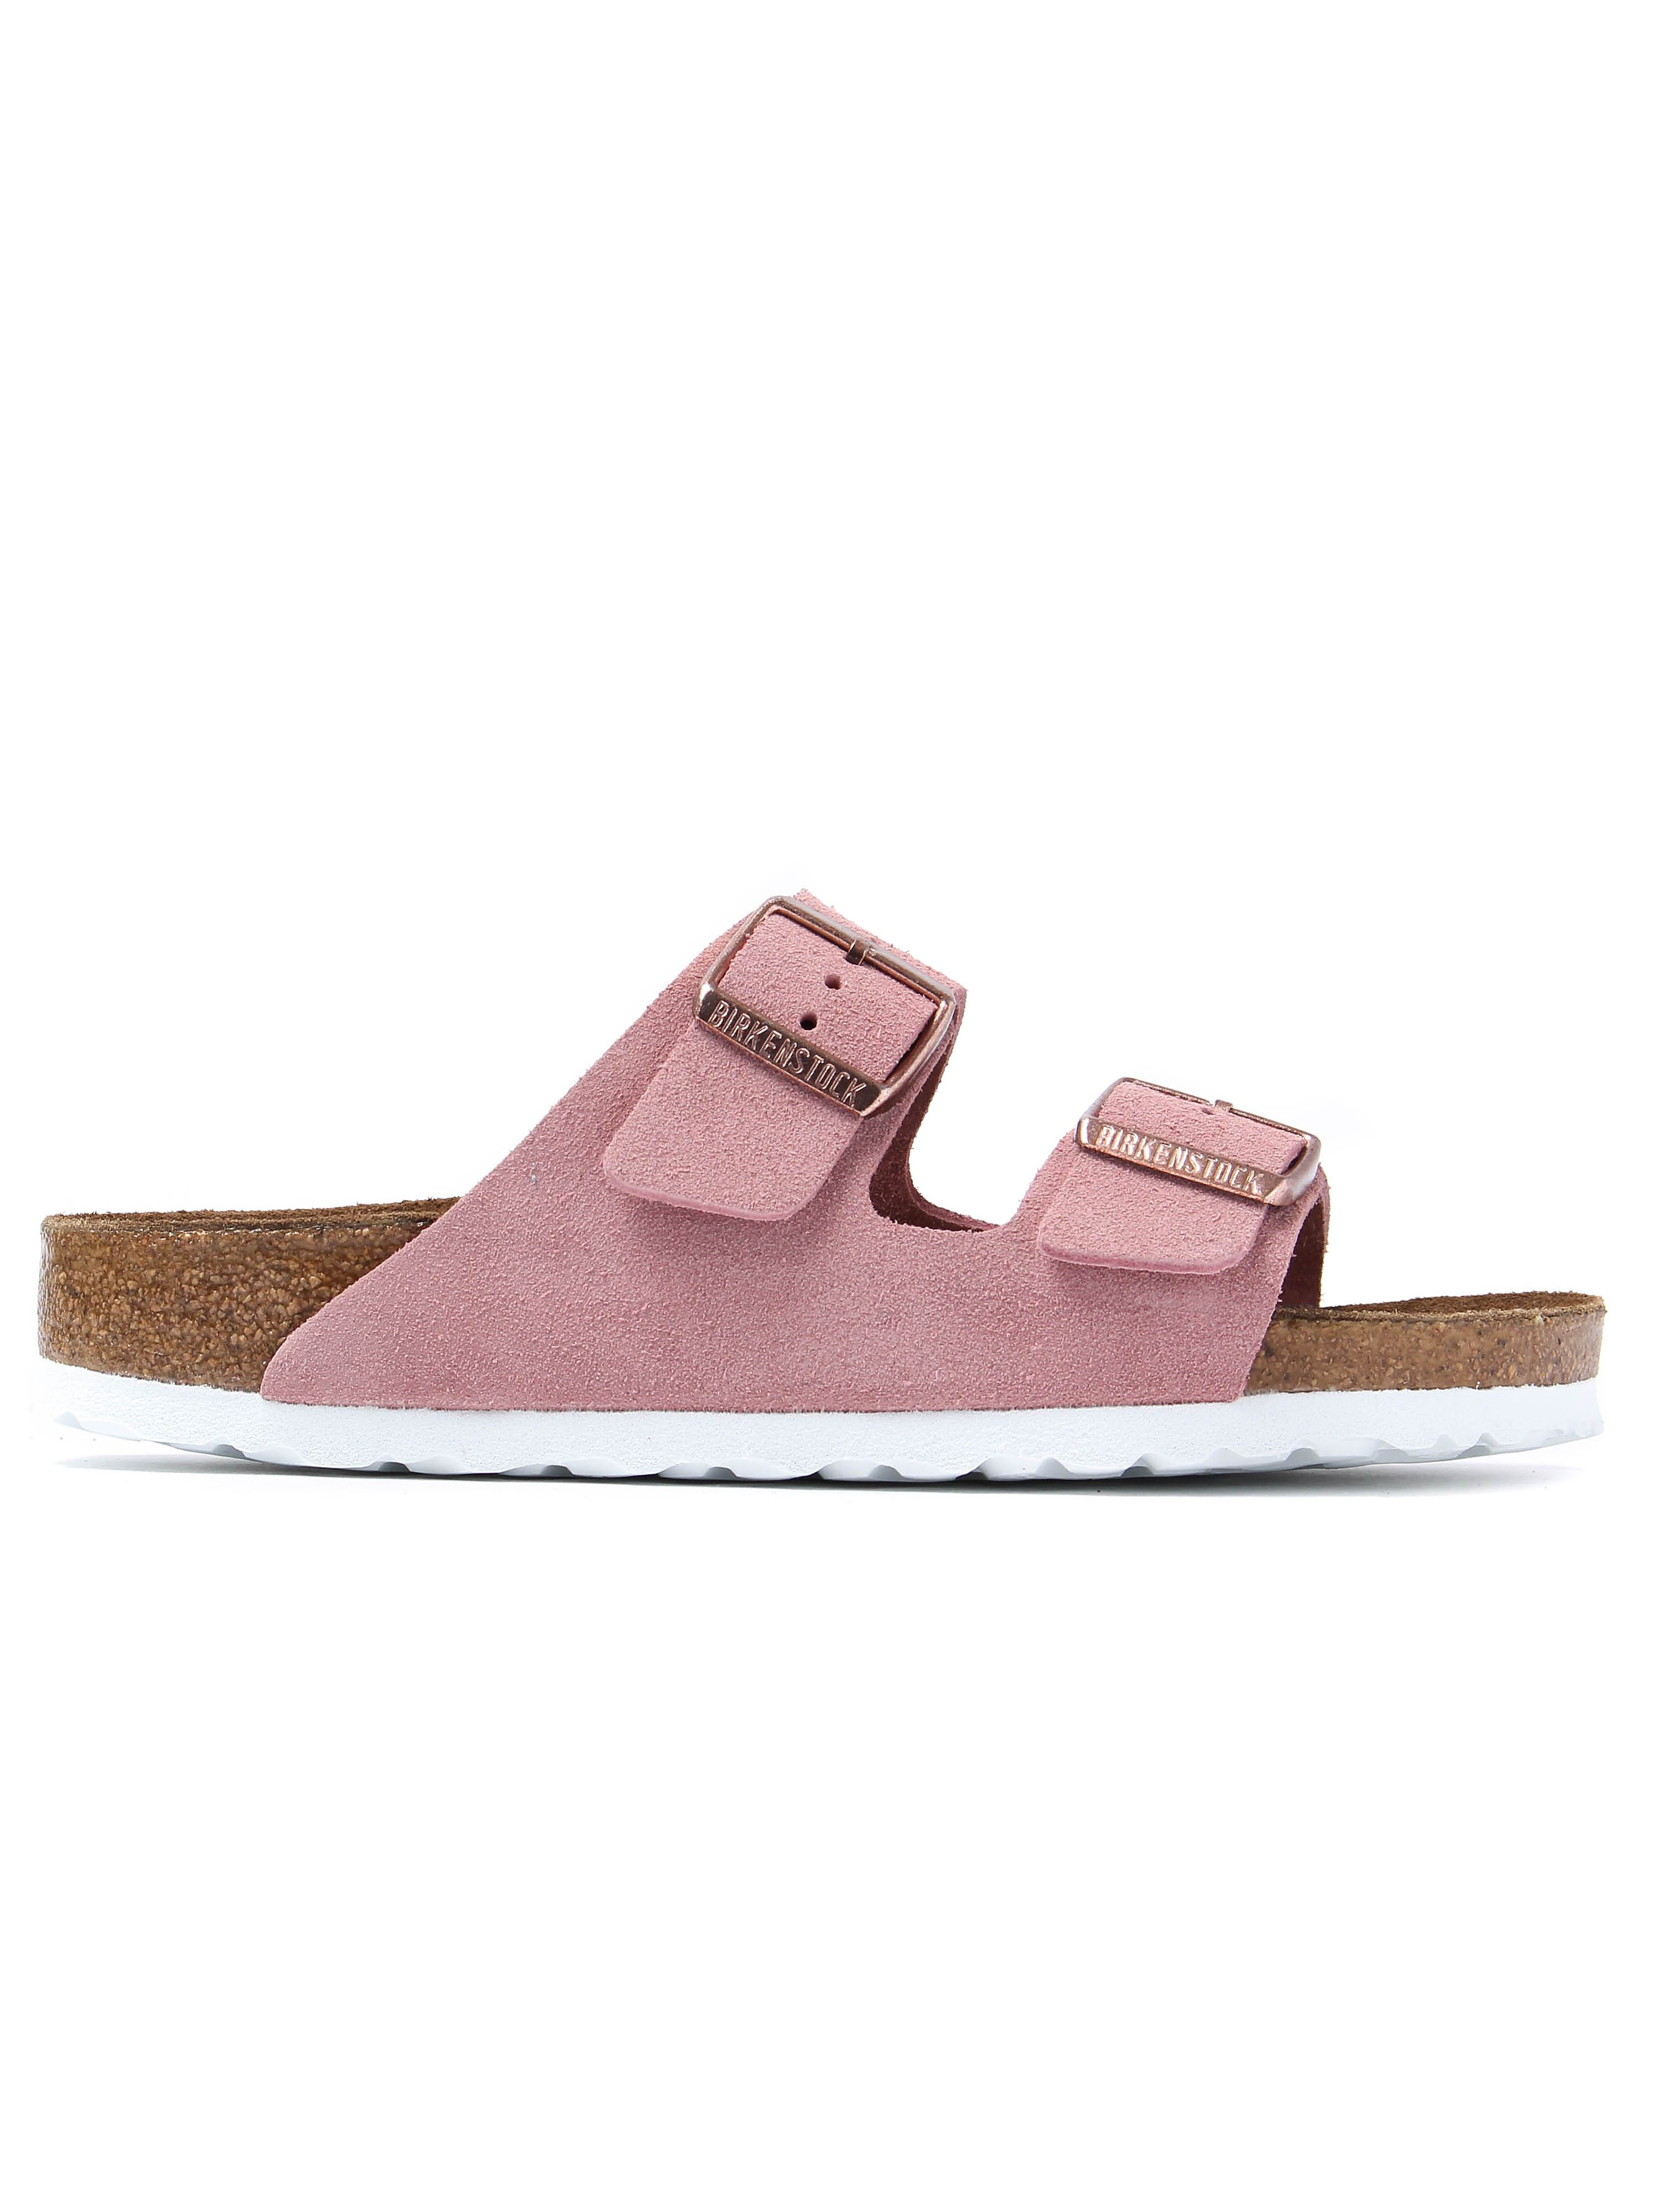 Birkenstock Women's Arizona Narrow Fit Sandals - Rose Suede